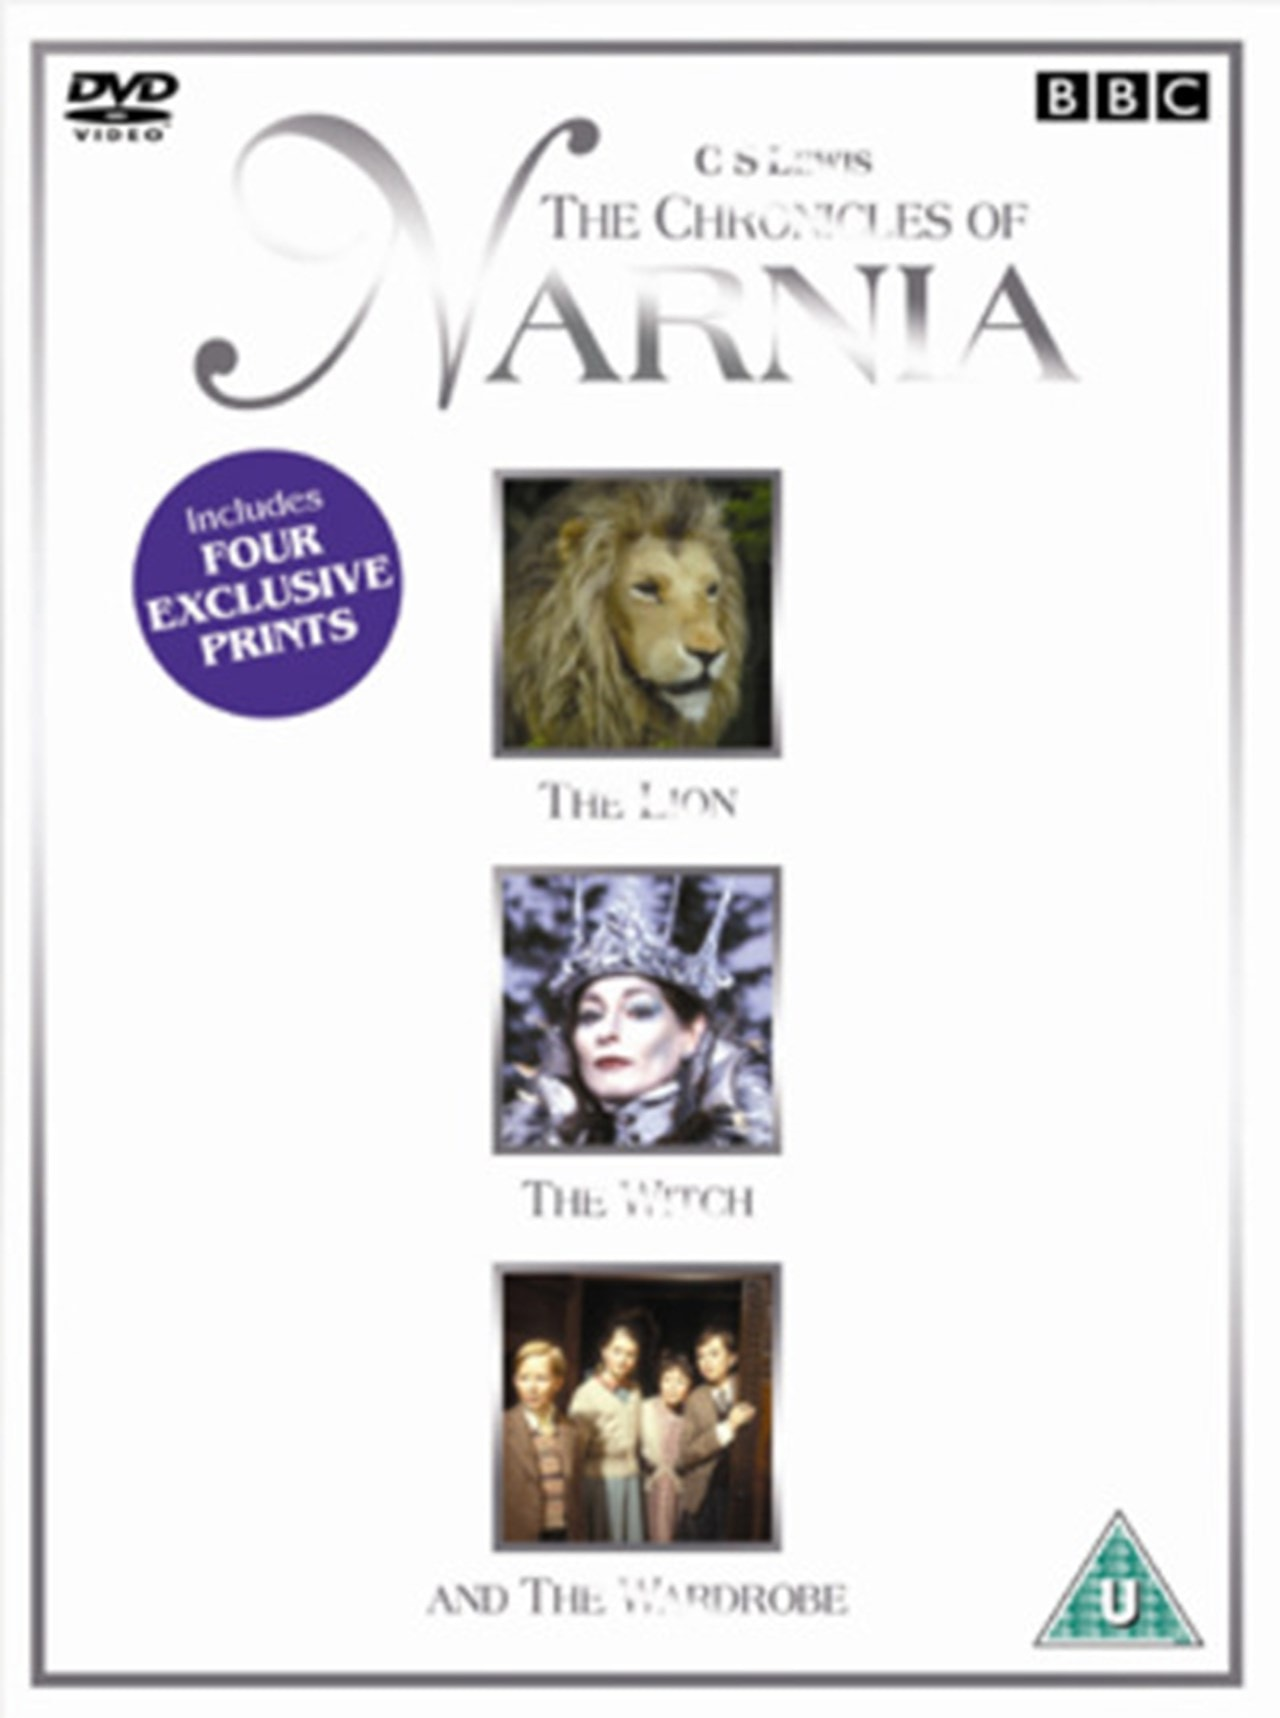 The Chronicles of Narnia: The Lion, the Witch and the Wardrobe - 1